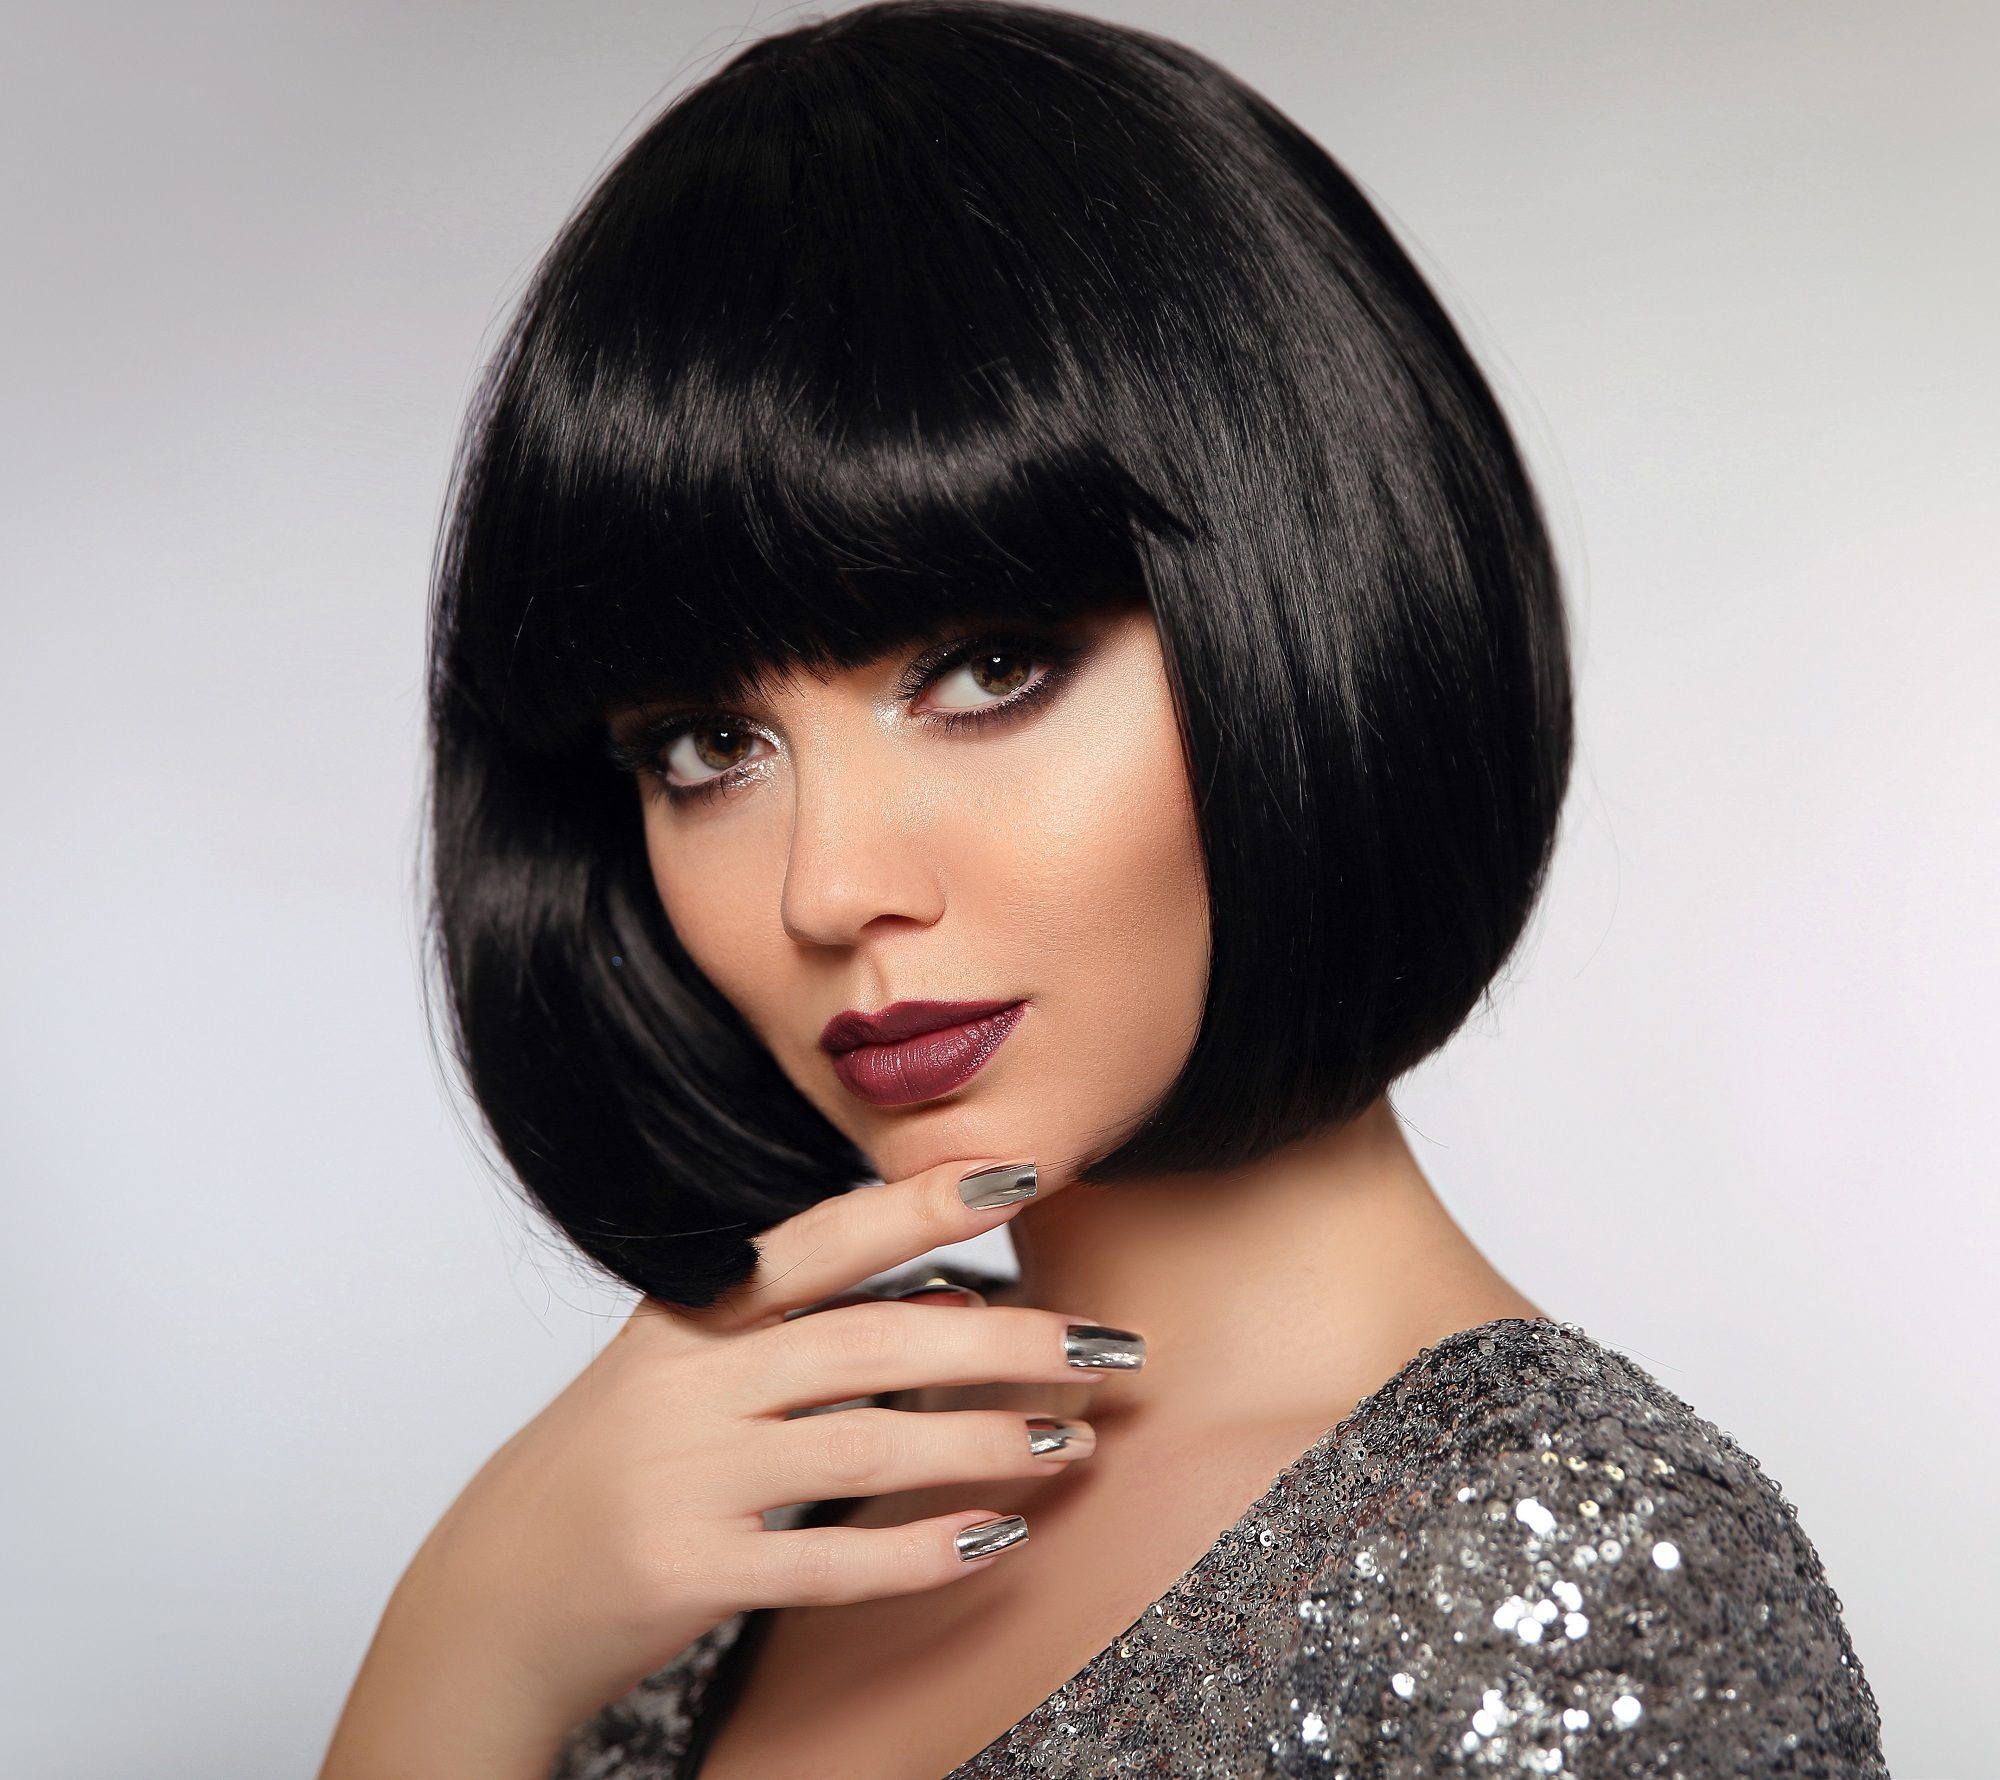 Short hair for round face: Closeup shot of a woman with short black hair and blunt bangs